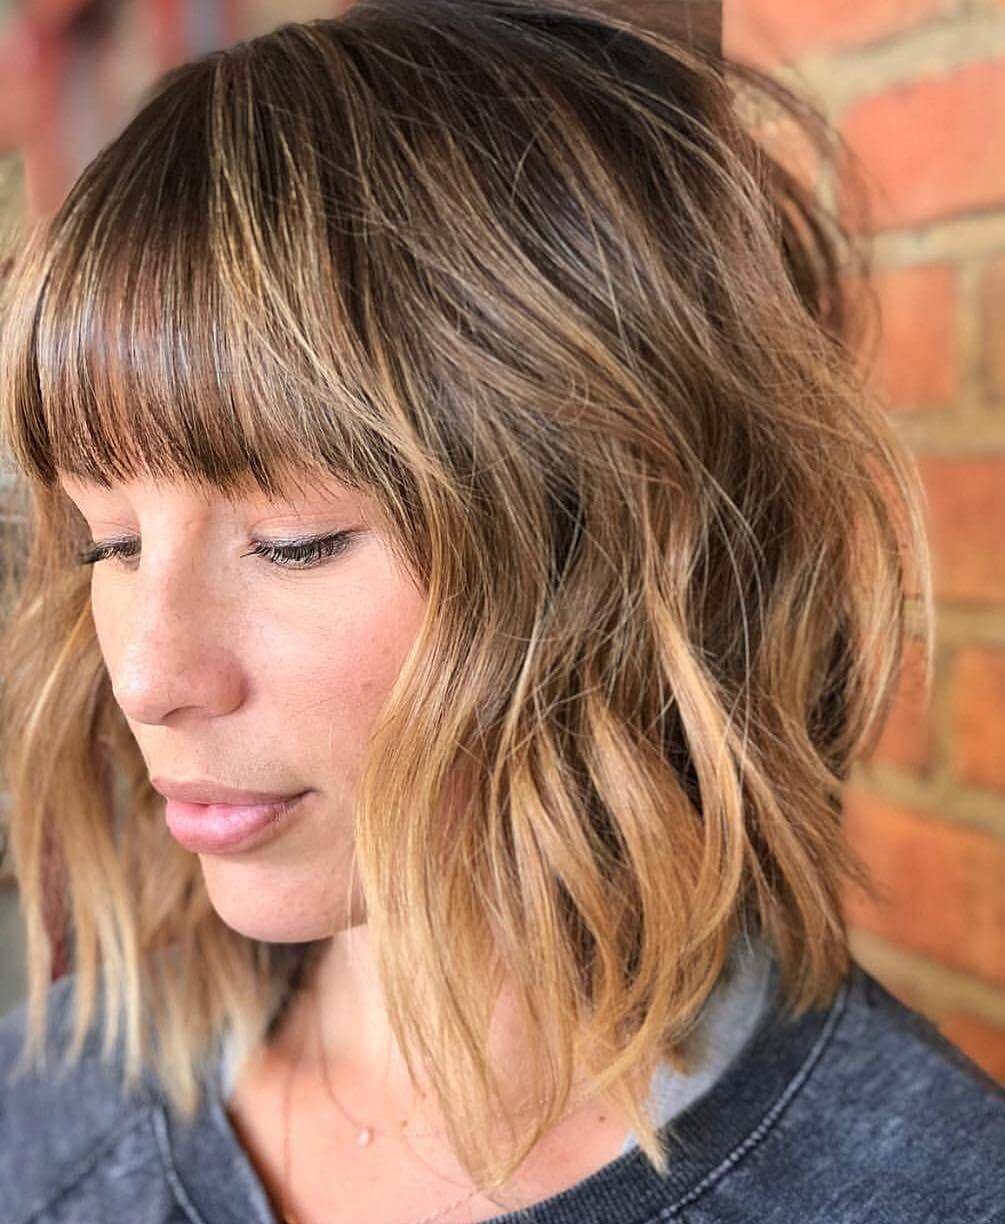 the most stunning hairstyles combining short hair with bangs 16